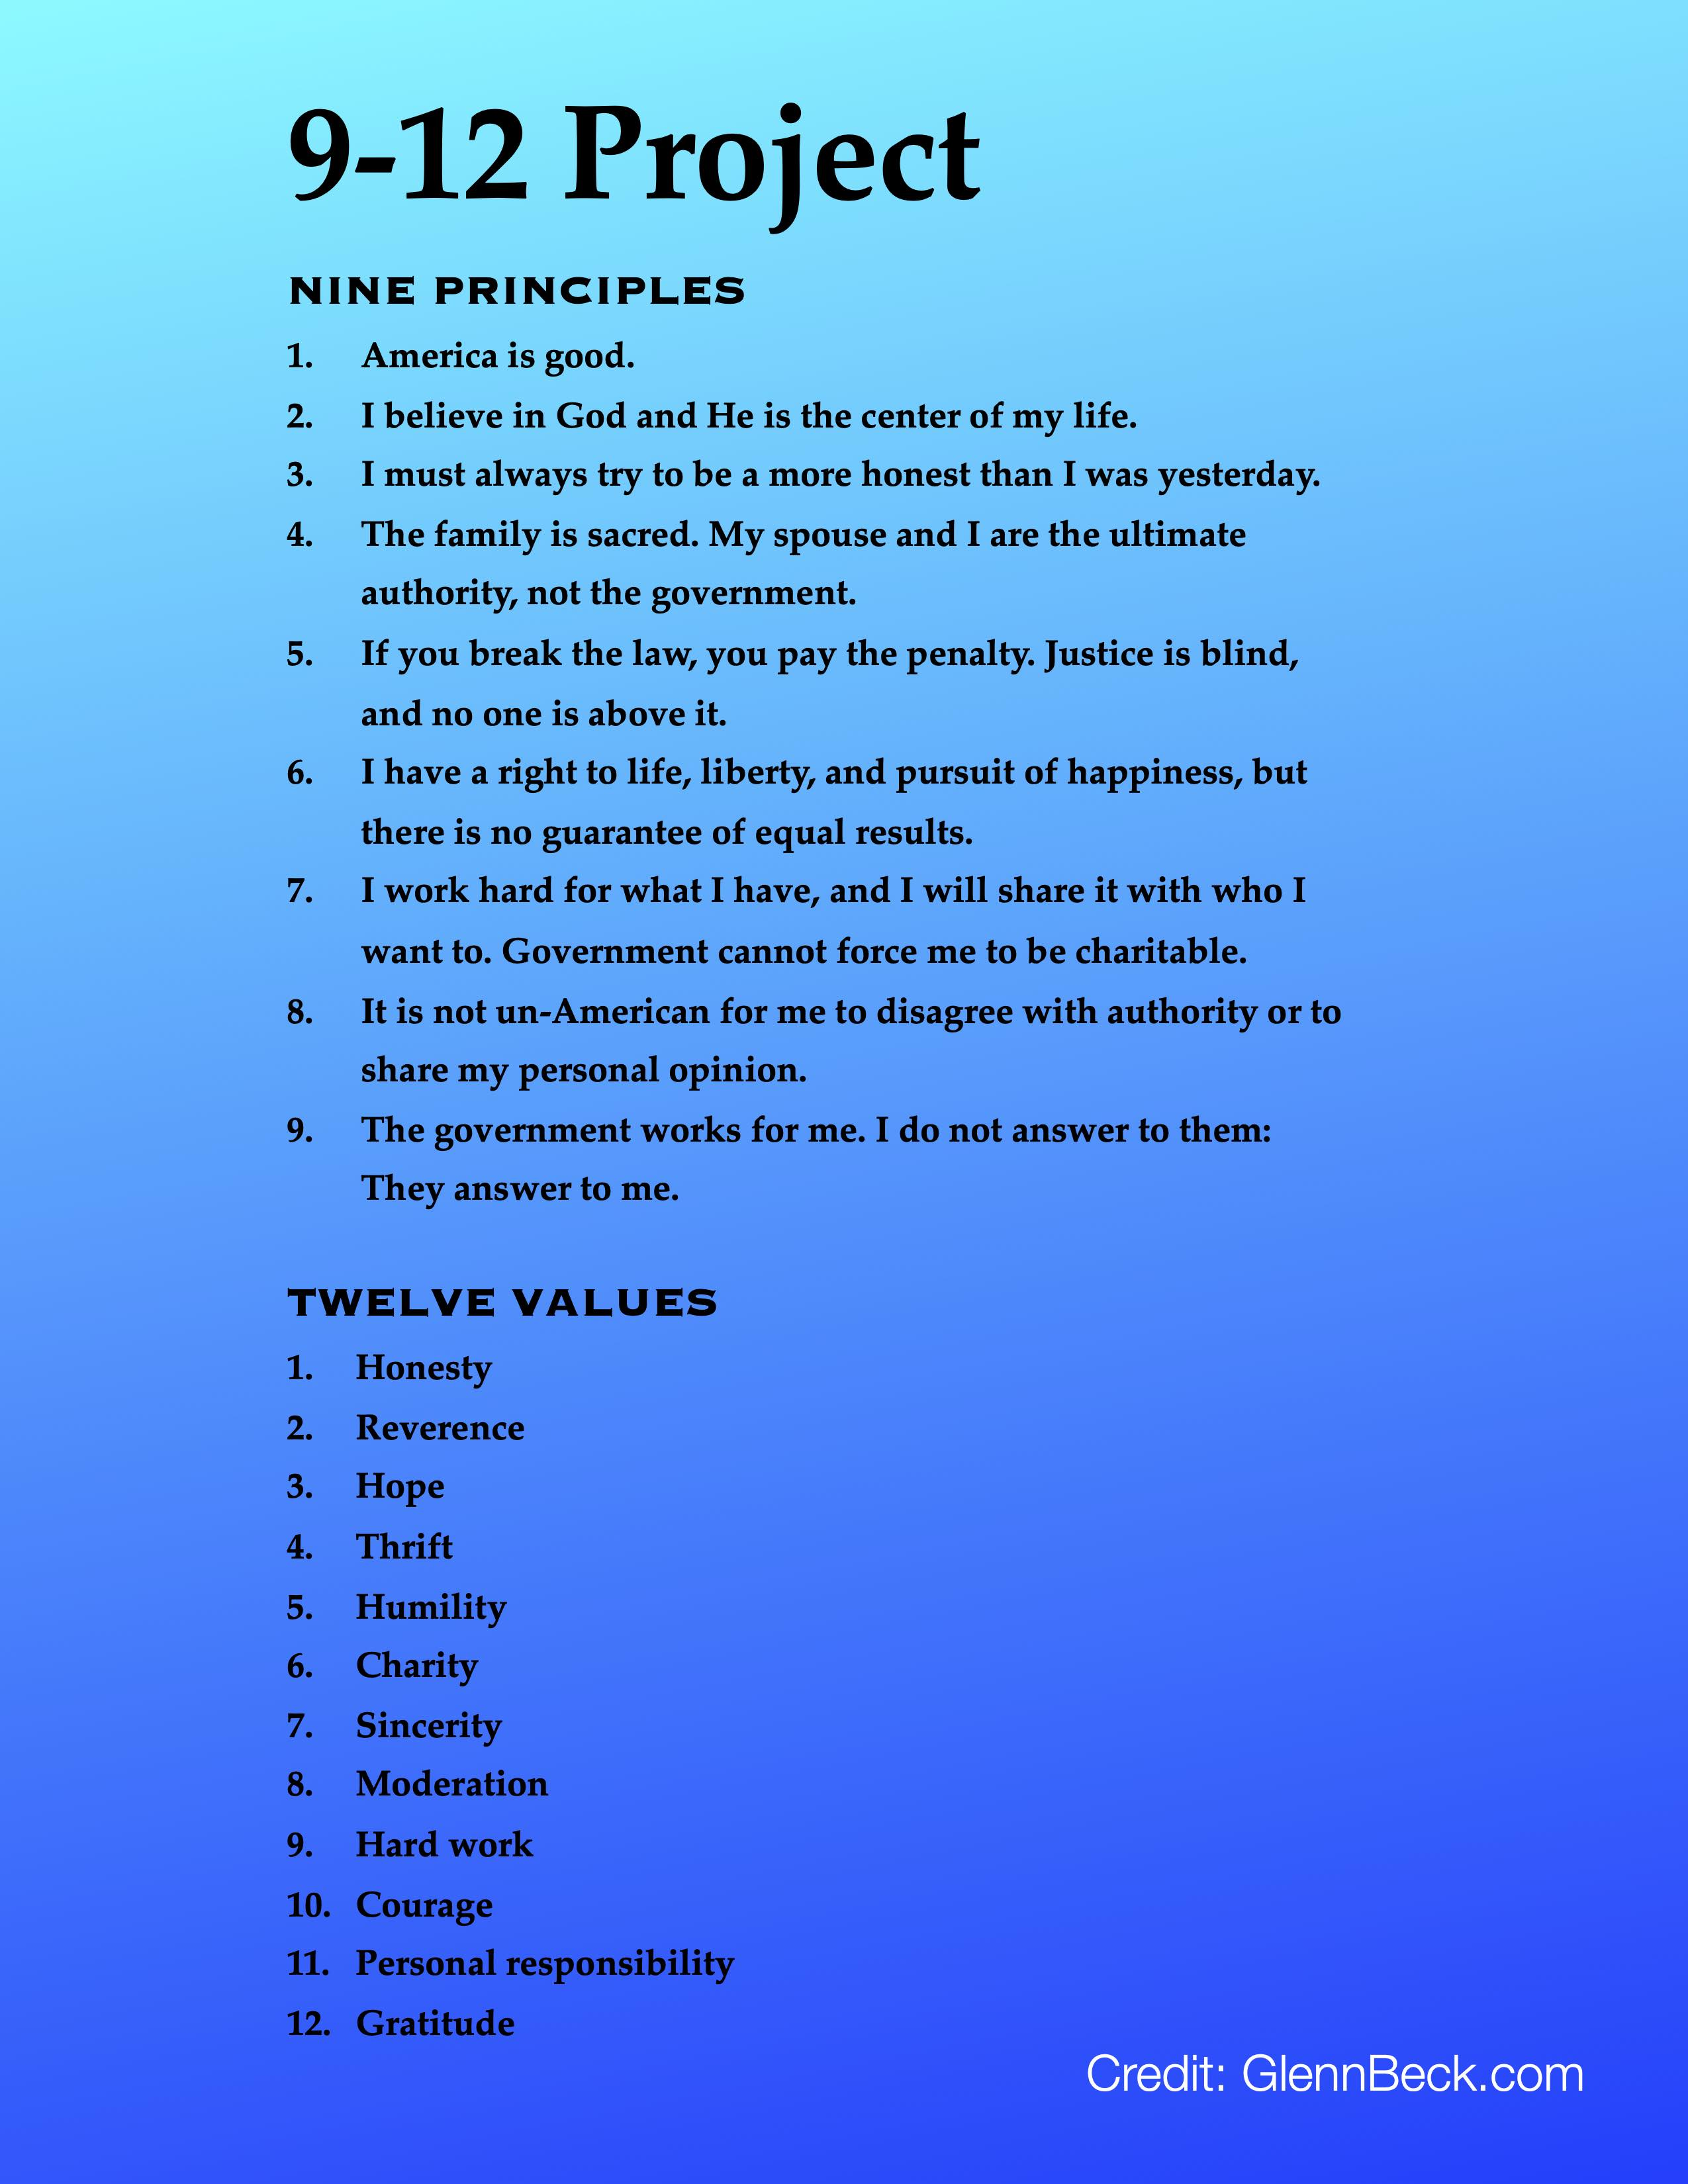 912 Project Principles and Values JPG.jpg